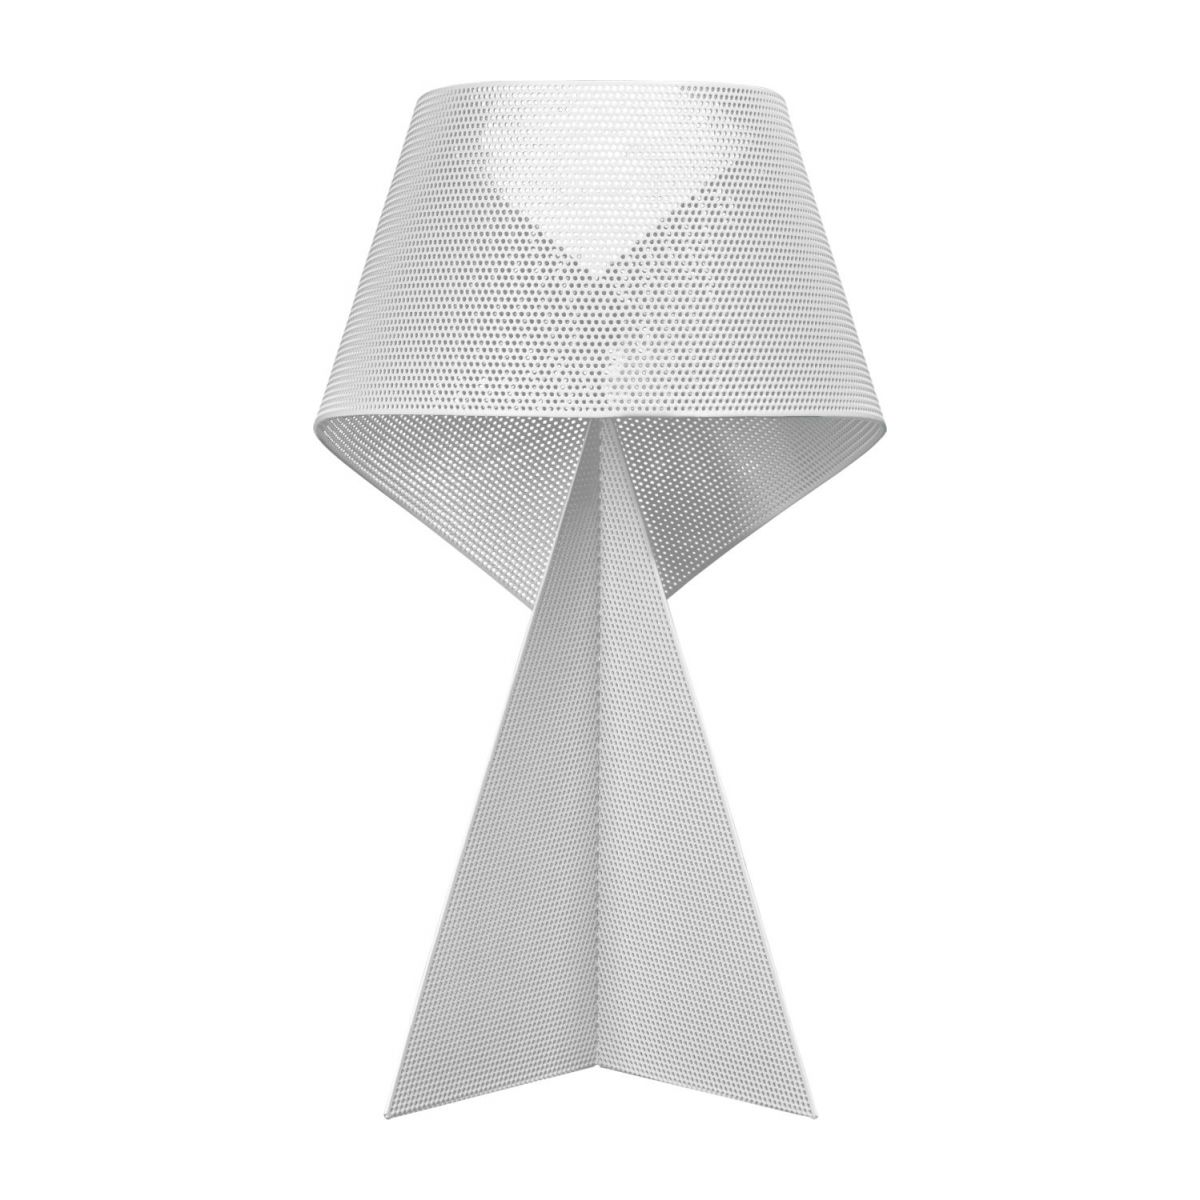 Lampe de table en métal perforé - Blanc - 50 cm n°2